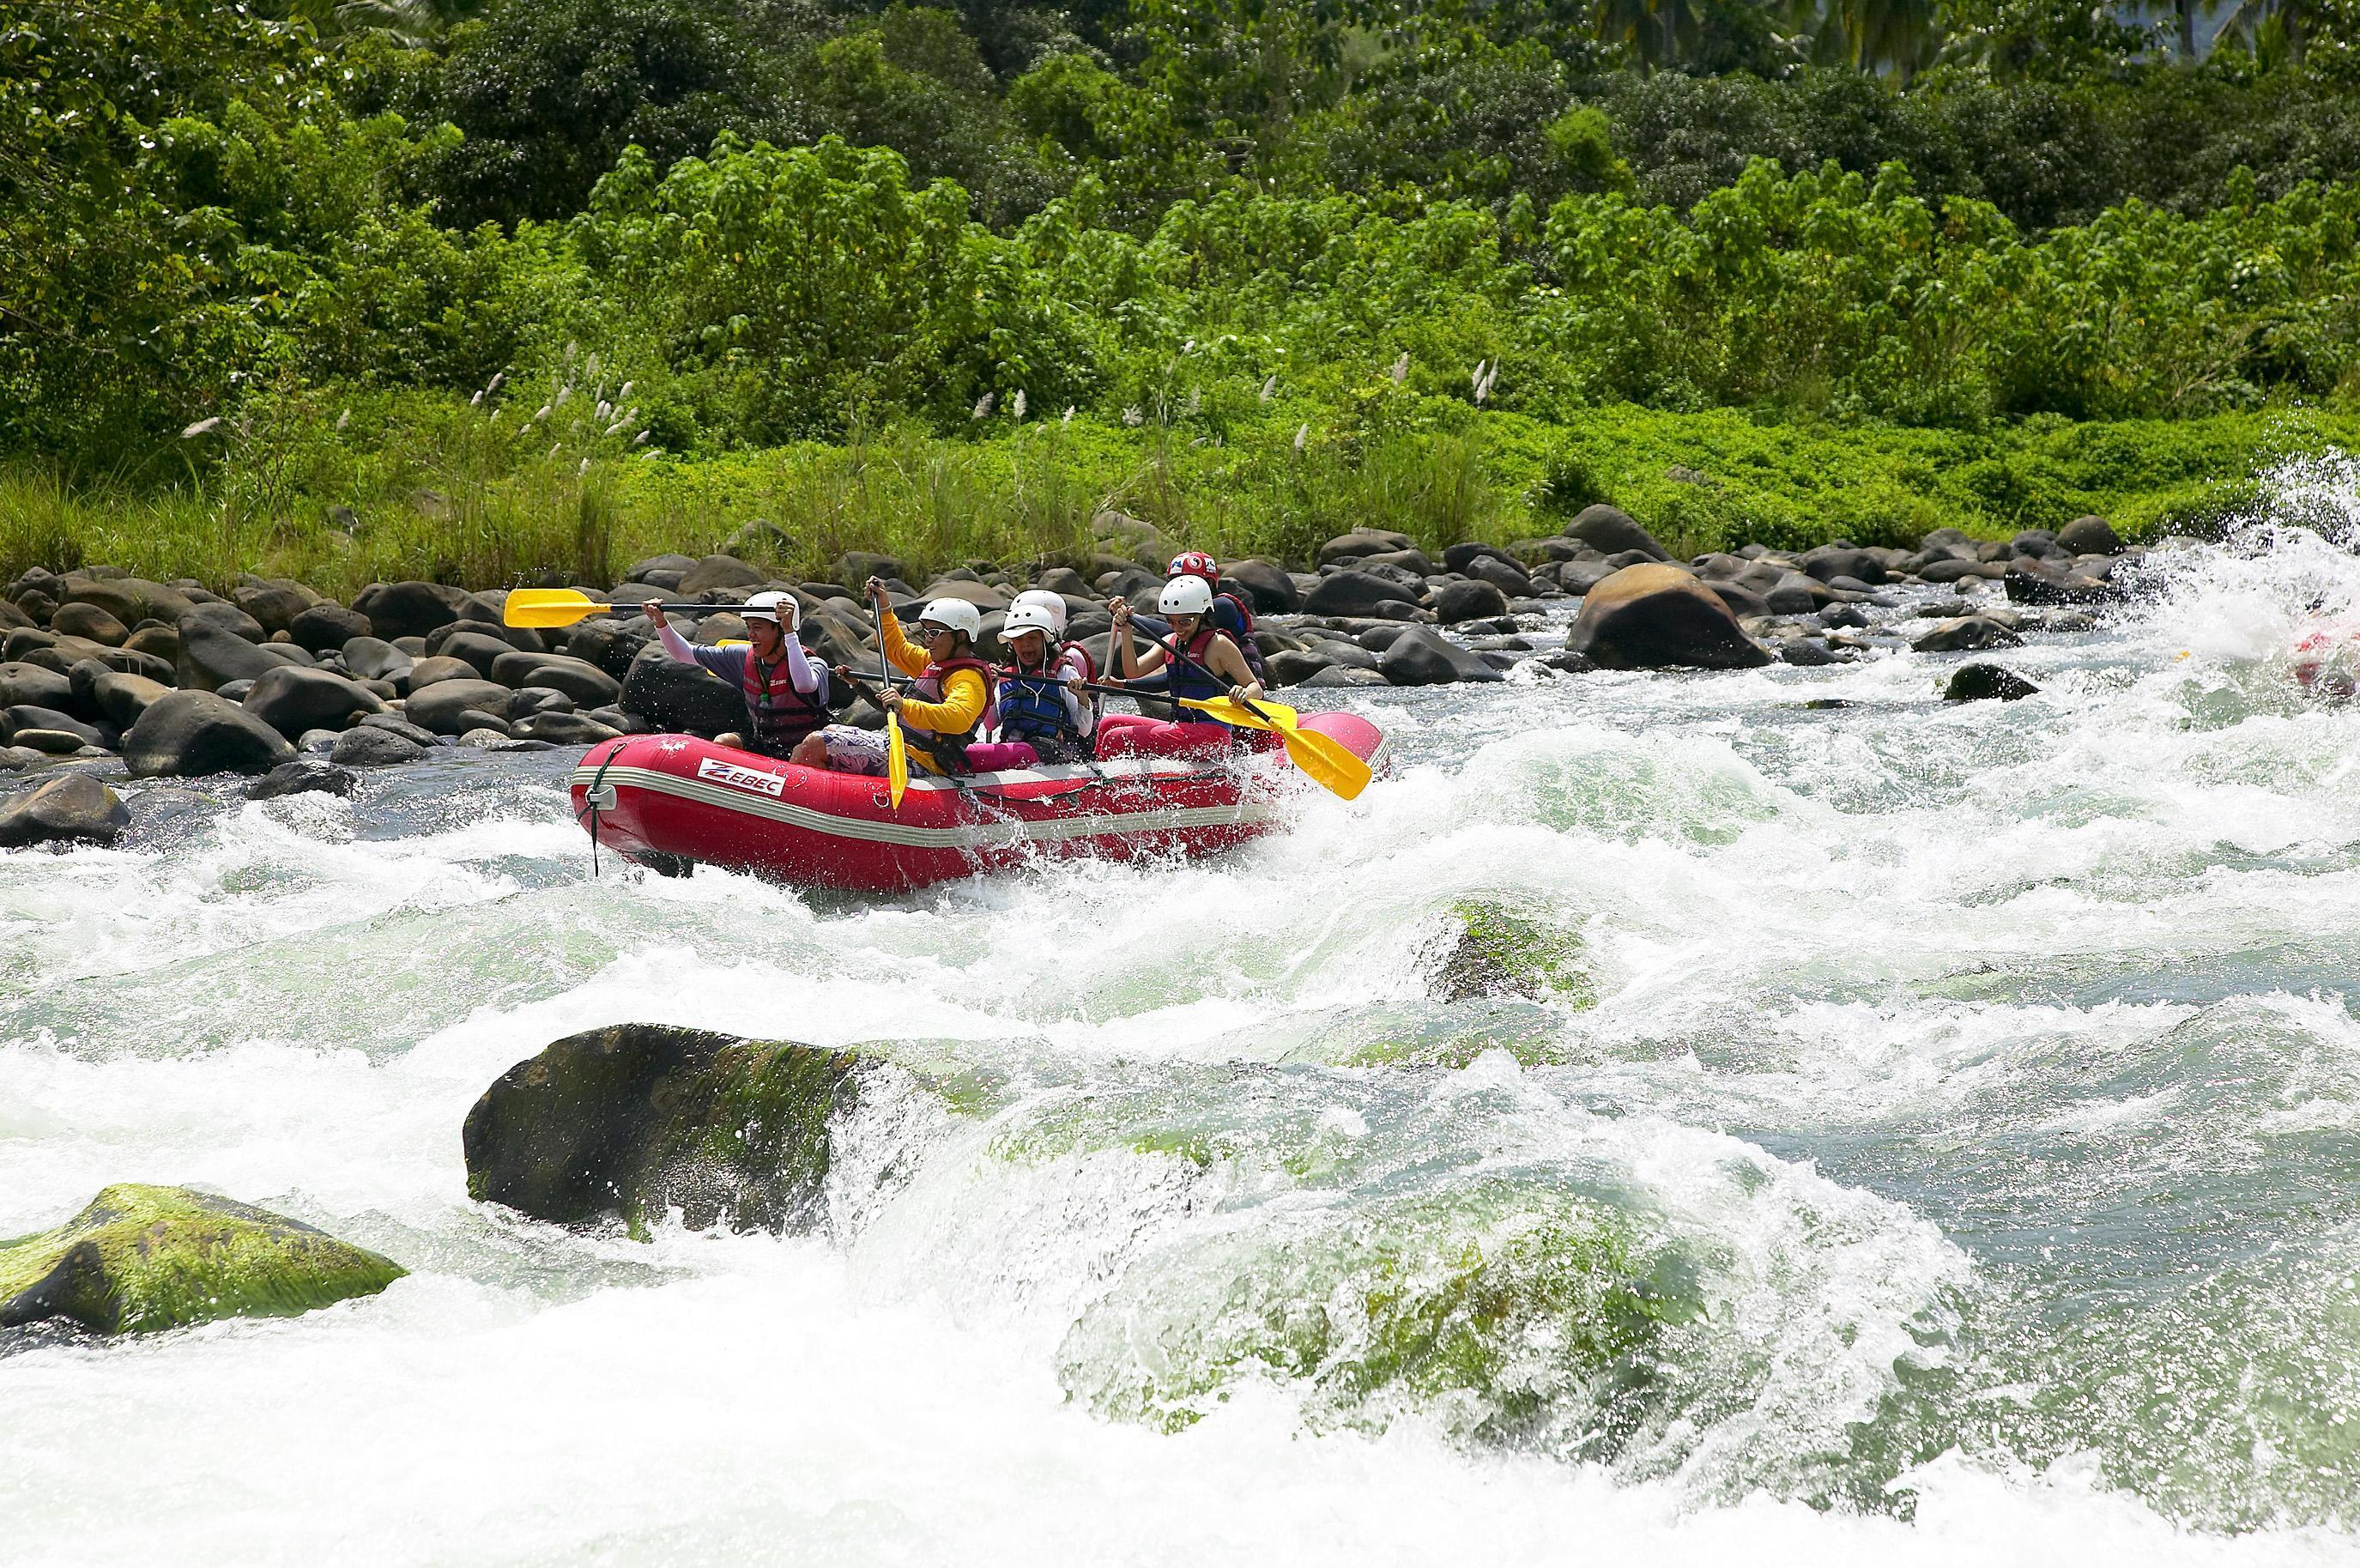 Whitewater Rafting in Cagayan de Oro: Nature at Its Wildest!